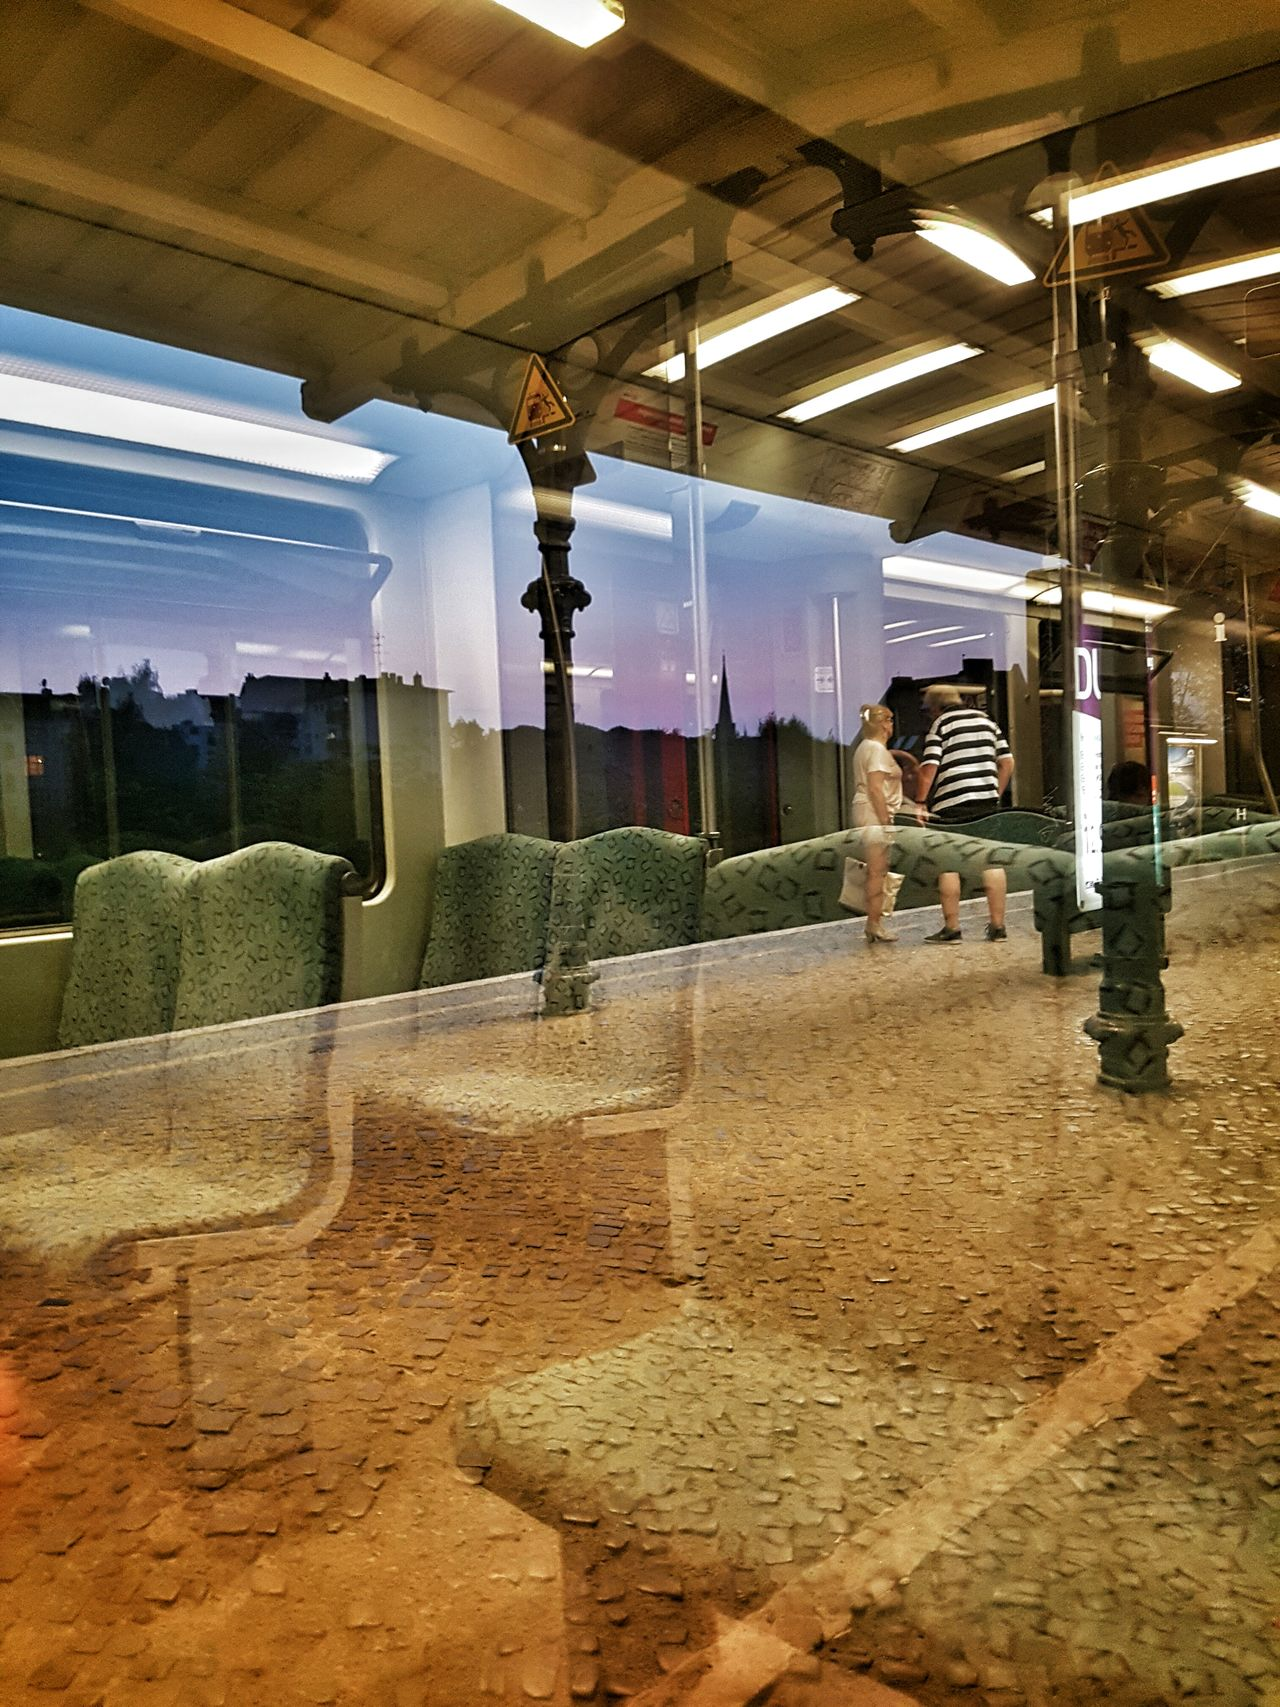 Ages journey EyeEm Best Shots Yorkstrasse Berlin Reflections Movement Train Station Passage Time